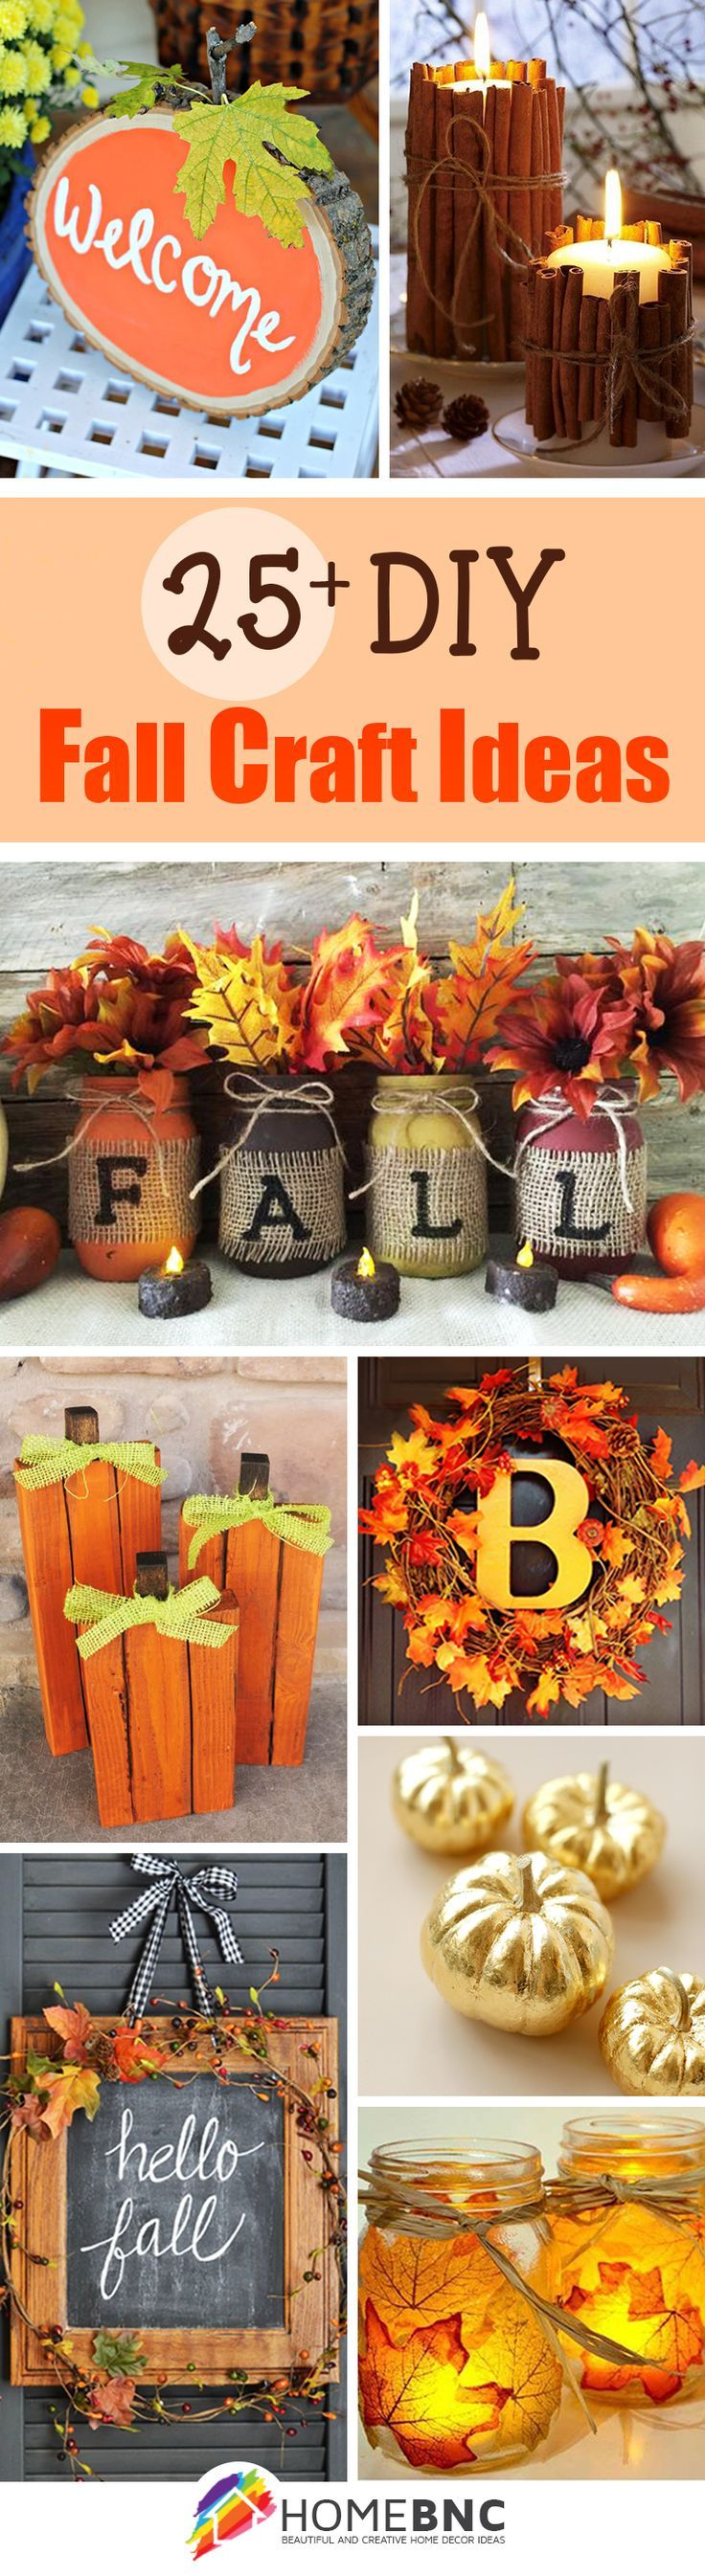 Pinterest Fall Crafts Ideas